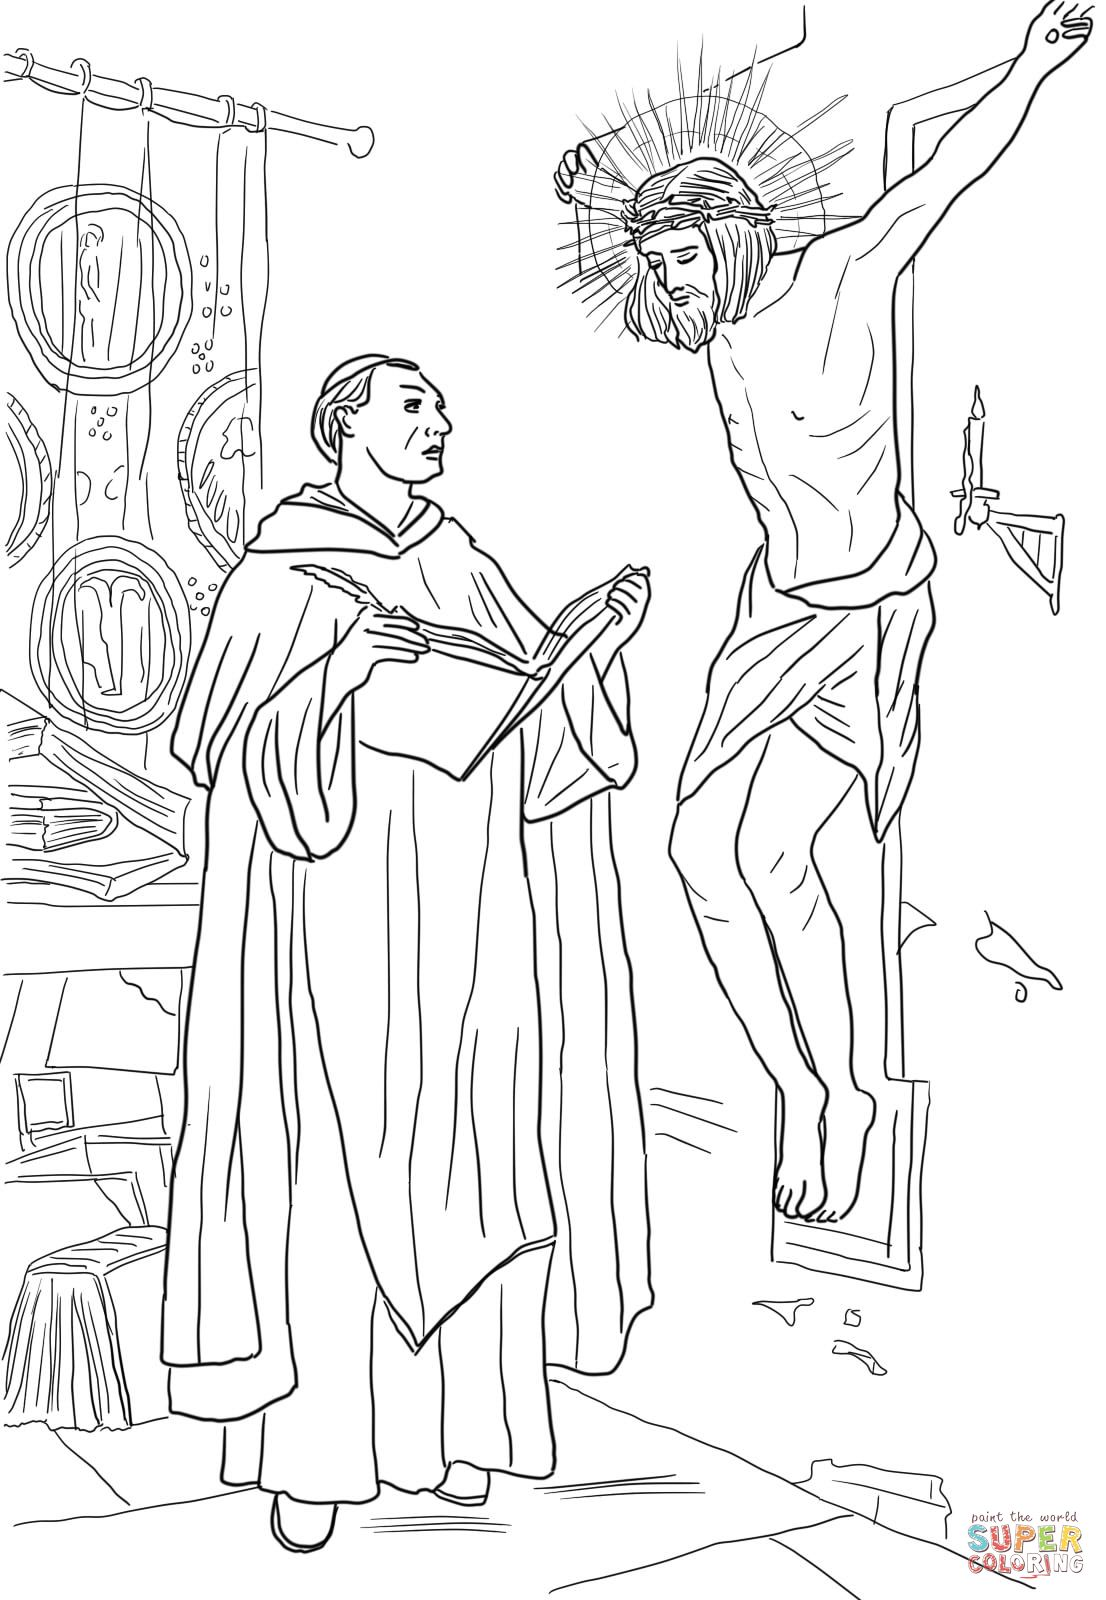 Bible Coloring Pages Bible Coloring Pages Coloring Pages Saint